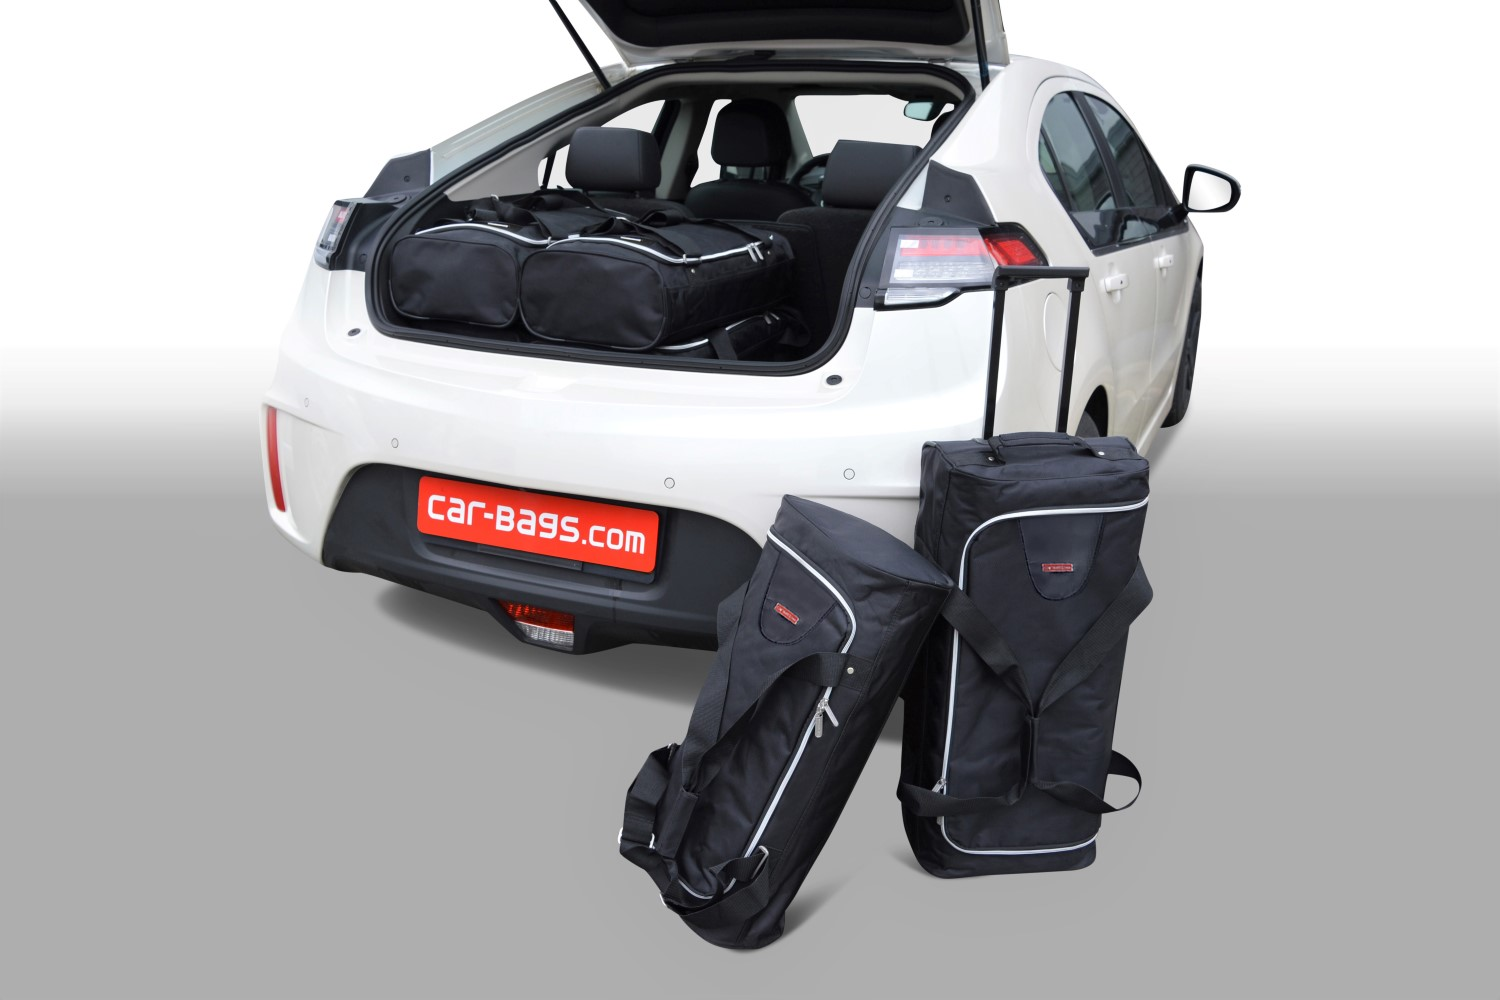 Opel Ampera 2012-2016 5 door Car-Bags.com travel bag set (1)